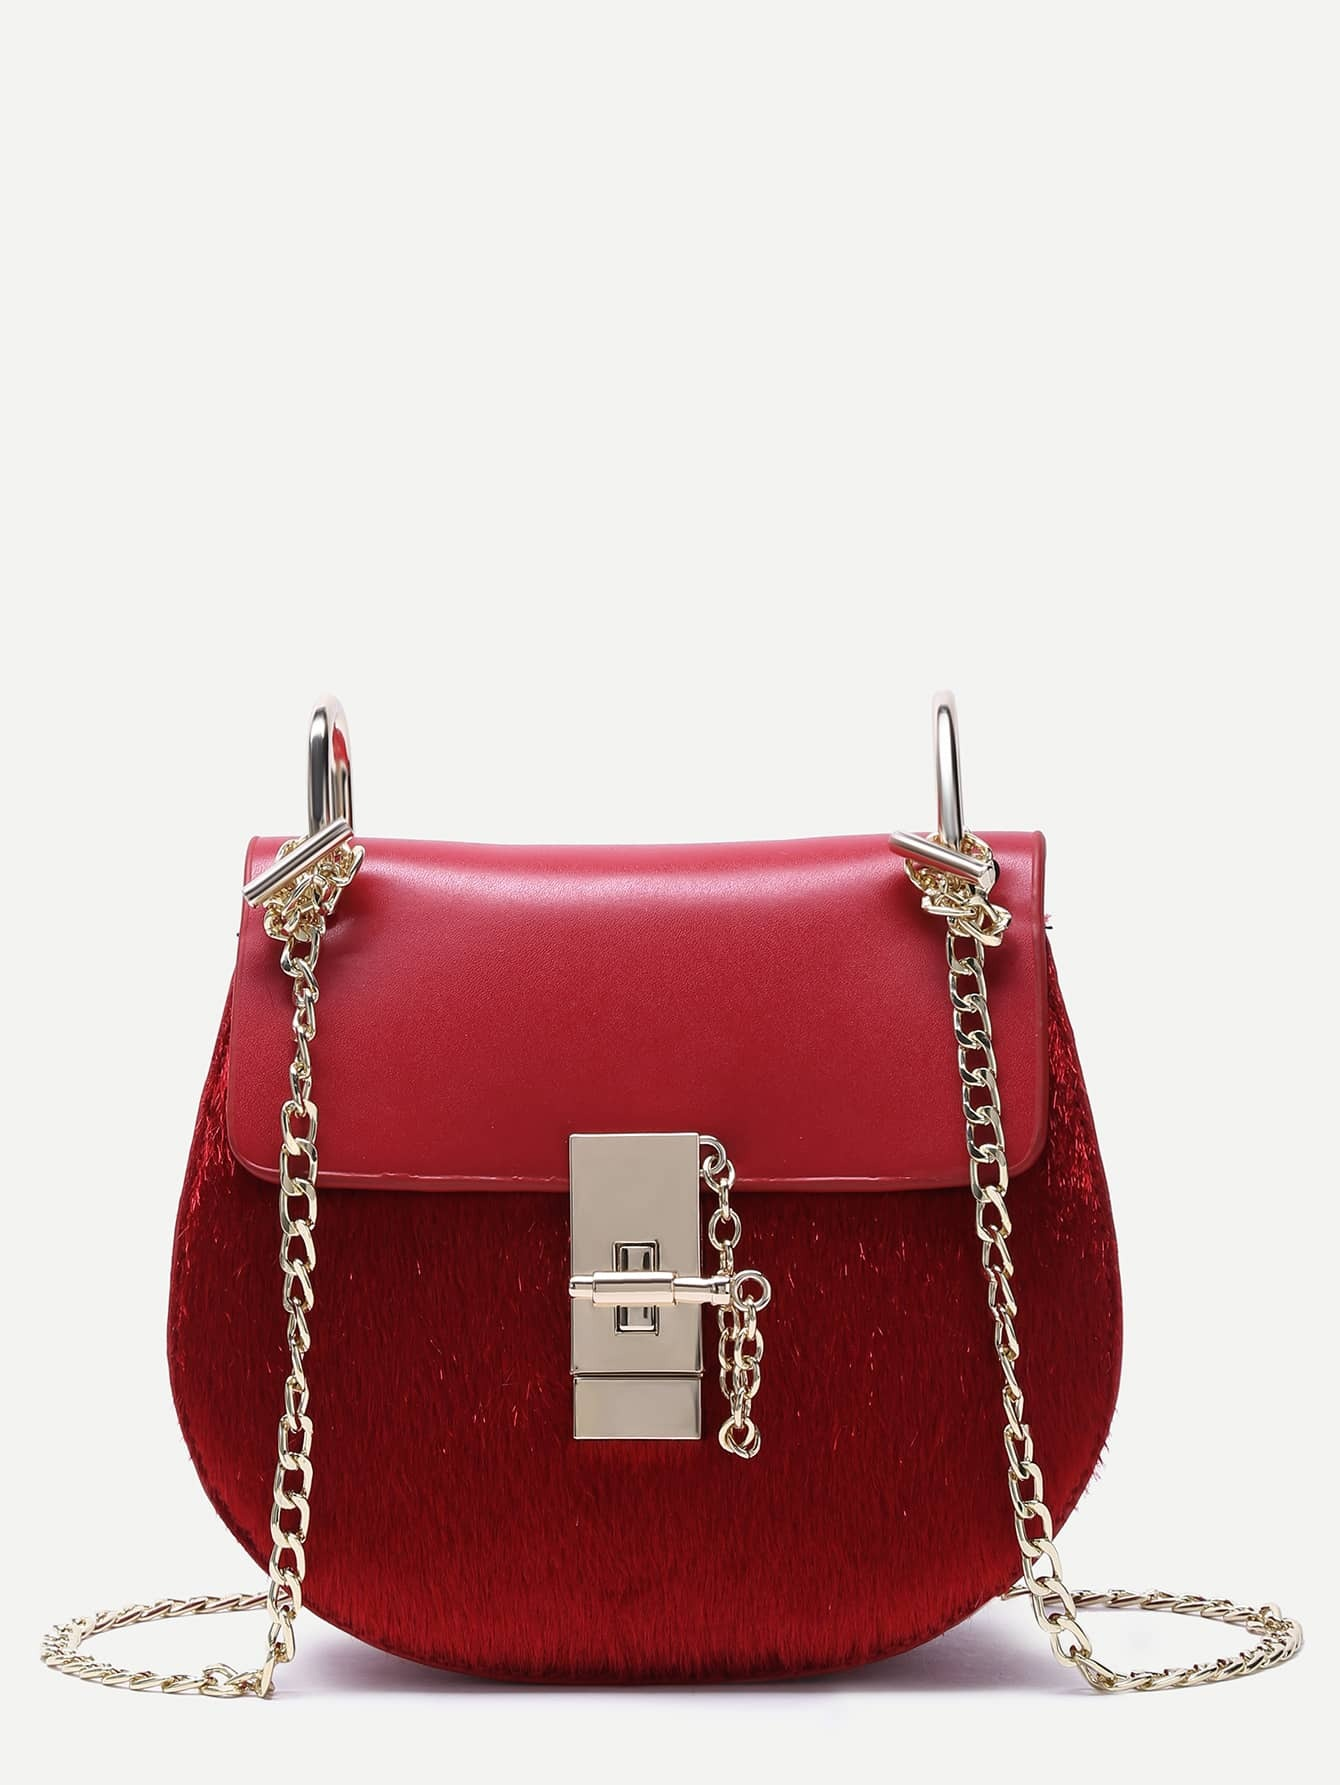 Red Horse Hair Covered PU Saddle Bag With Chain Strap Image